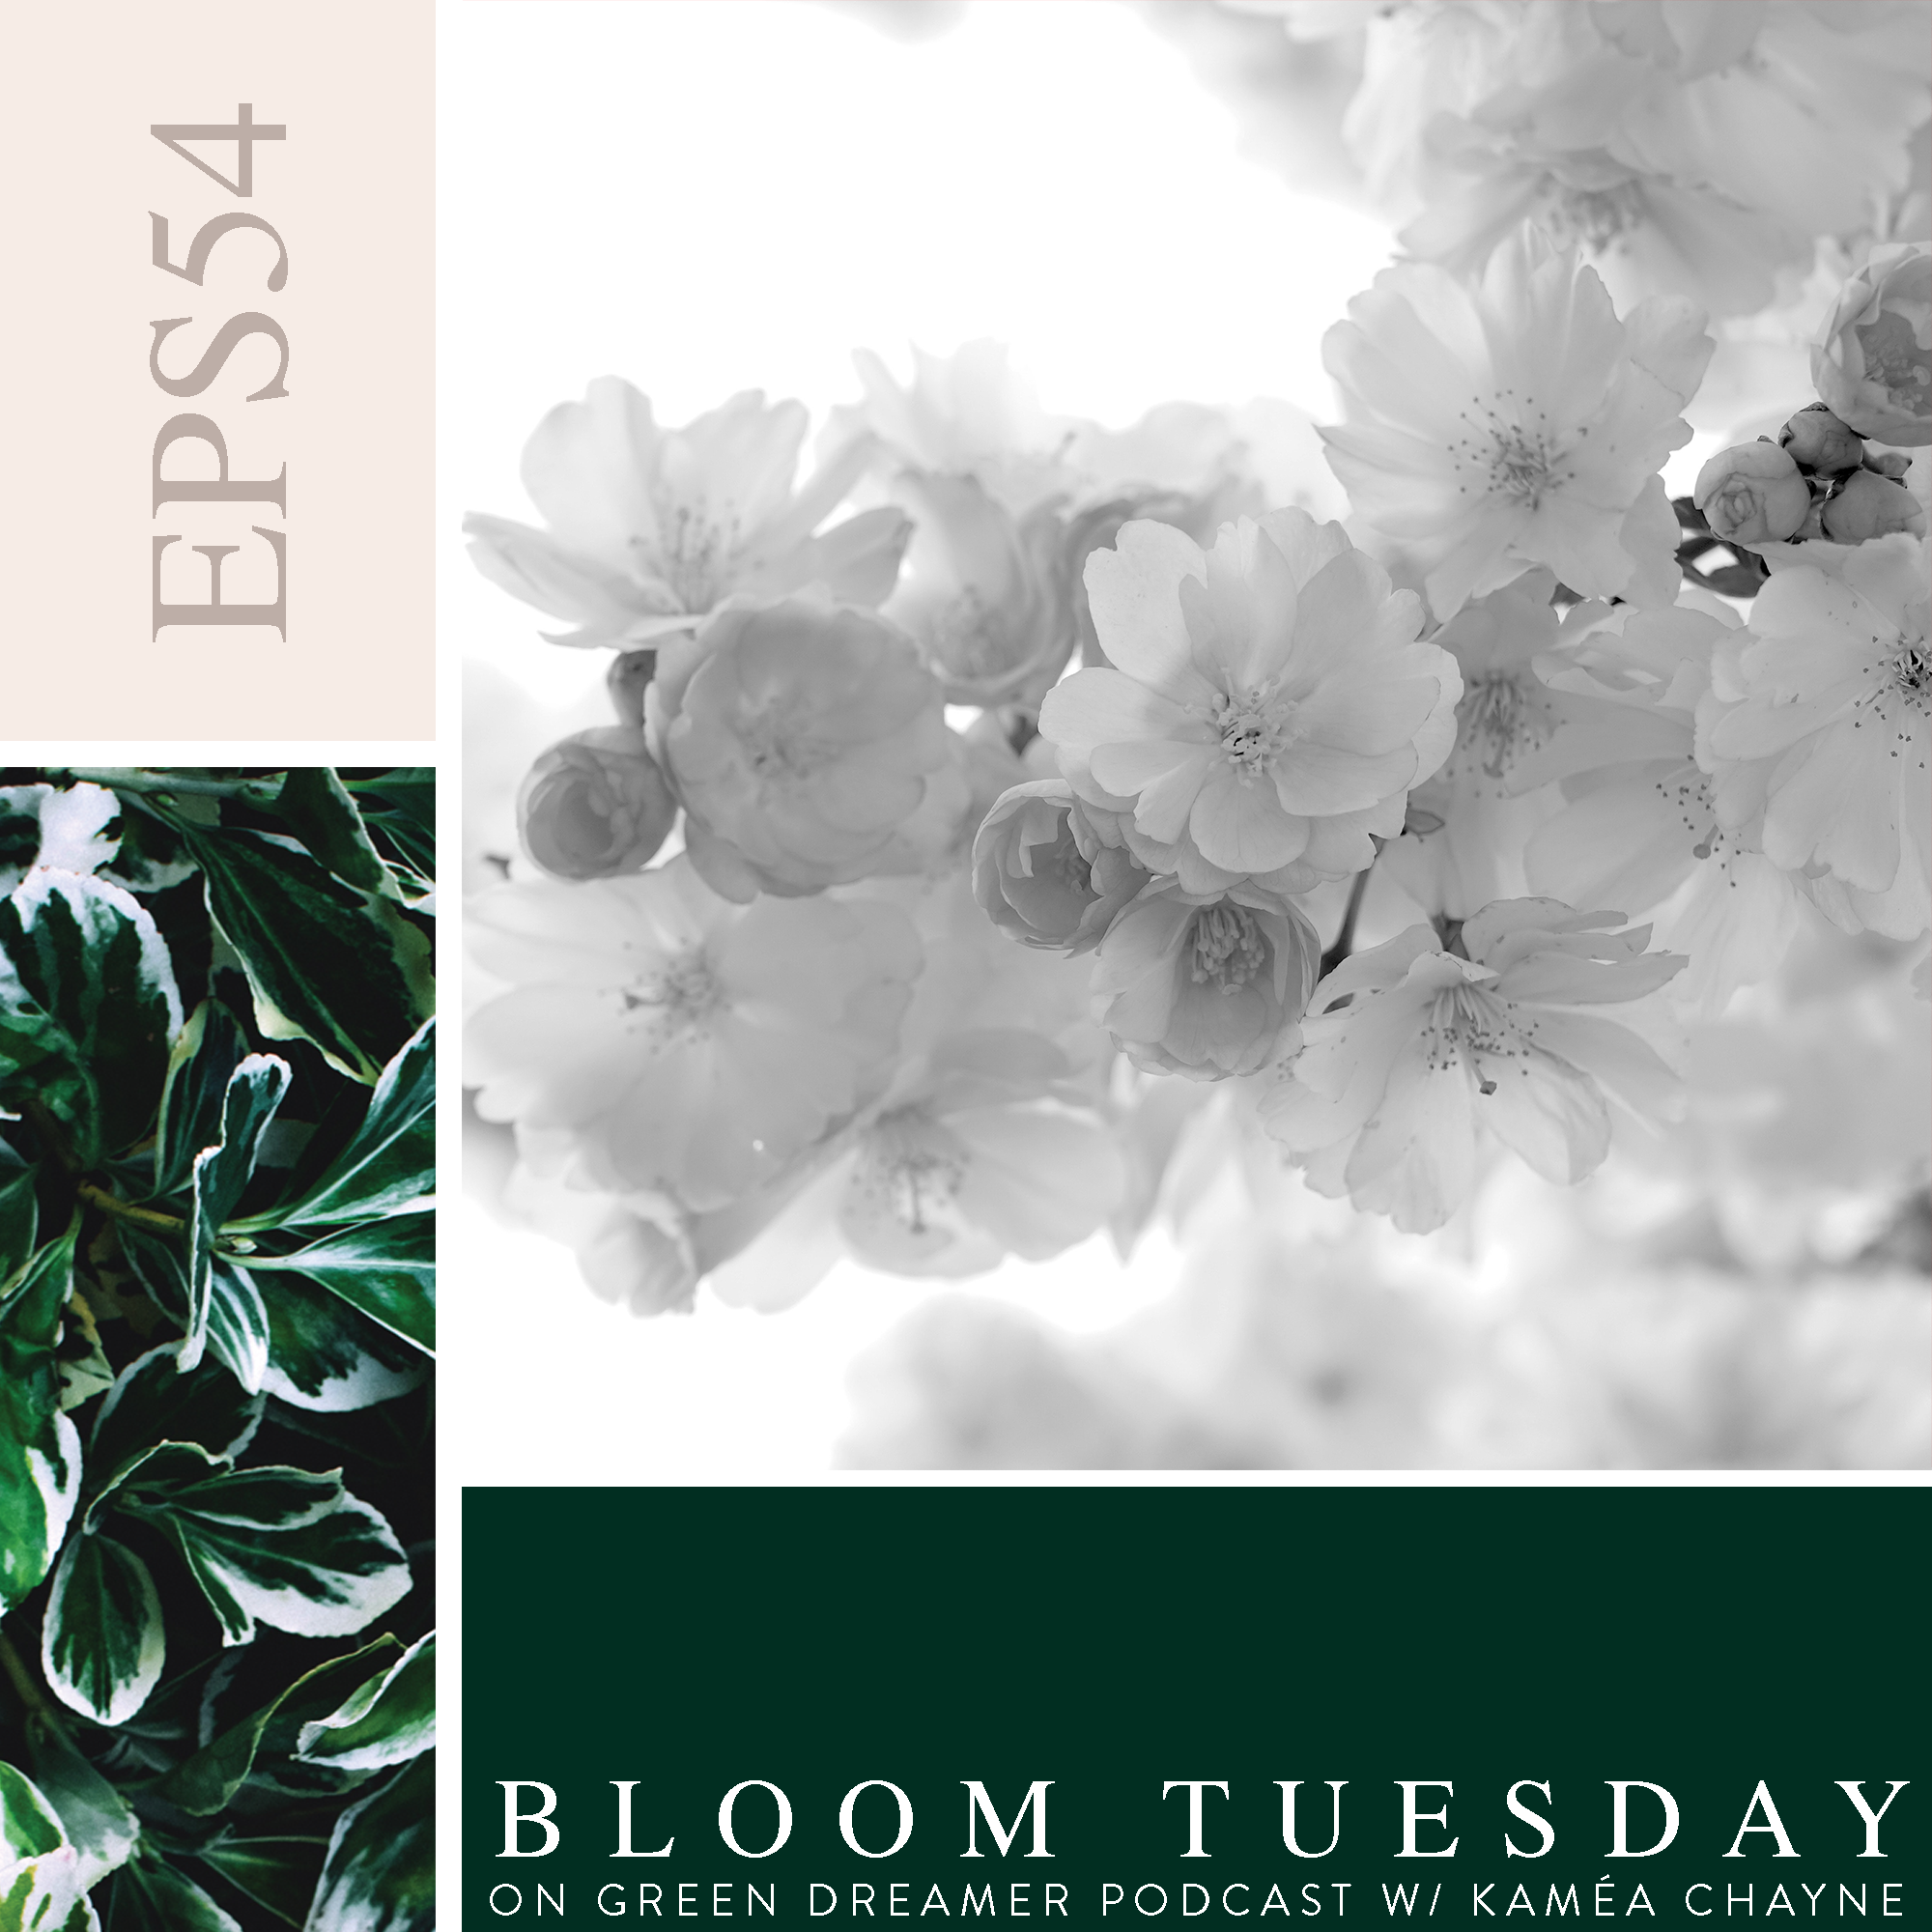 54) BLOOM TUESDAY